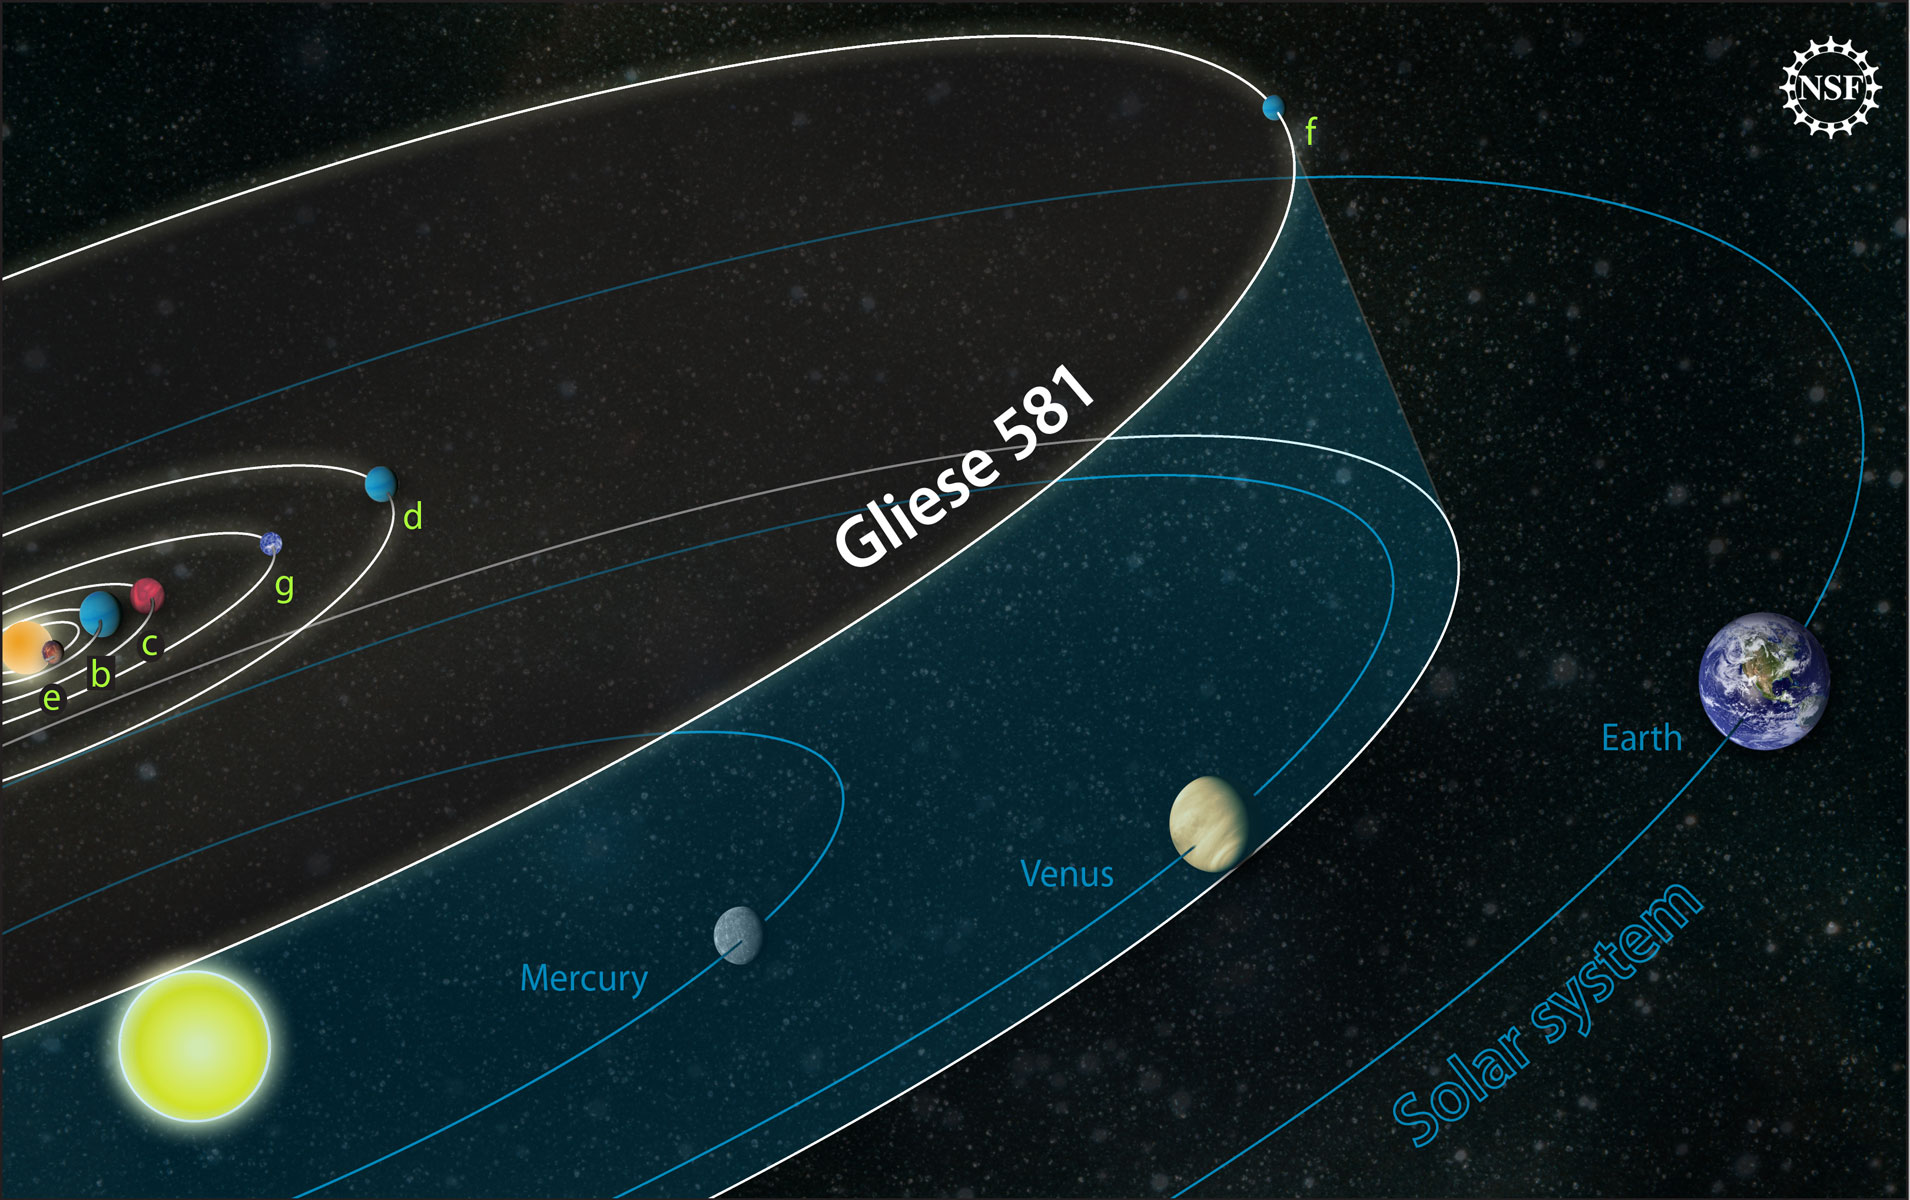 """Could Chance for Life on Gliese 581g Actually Be """"100%""""?"""